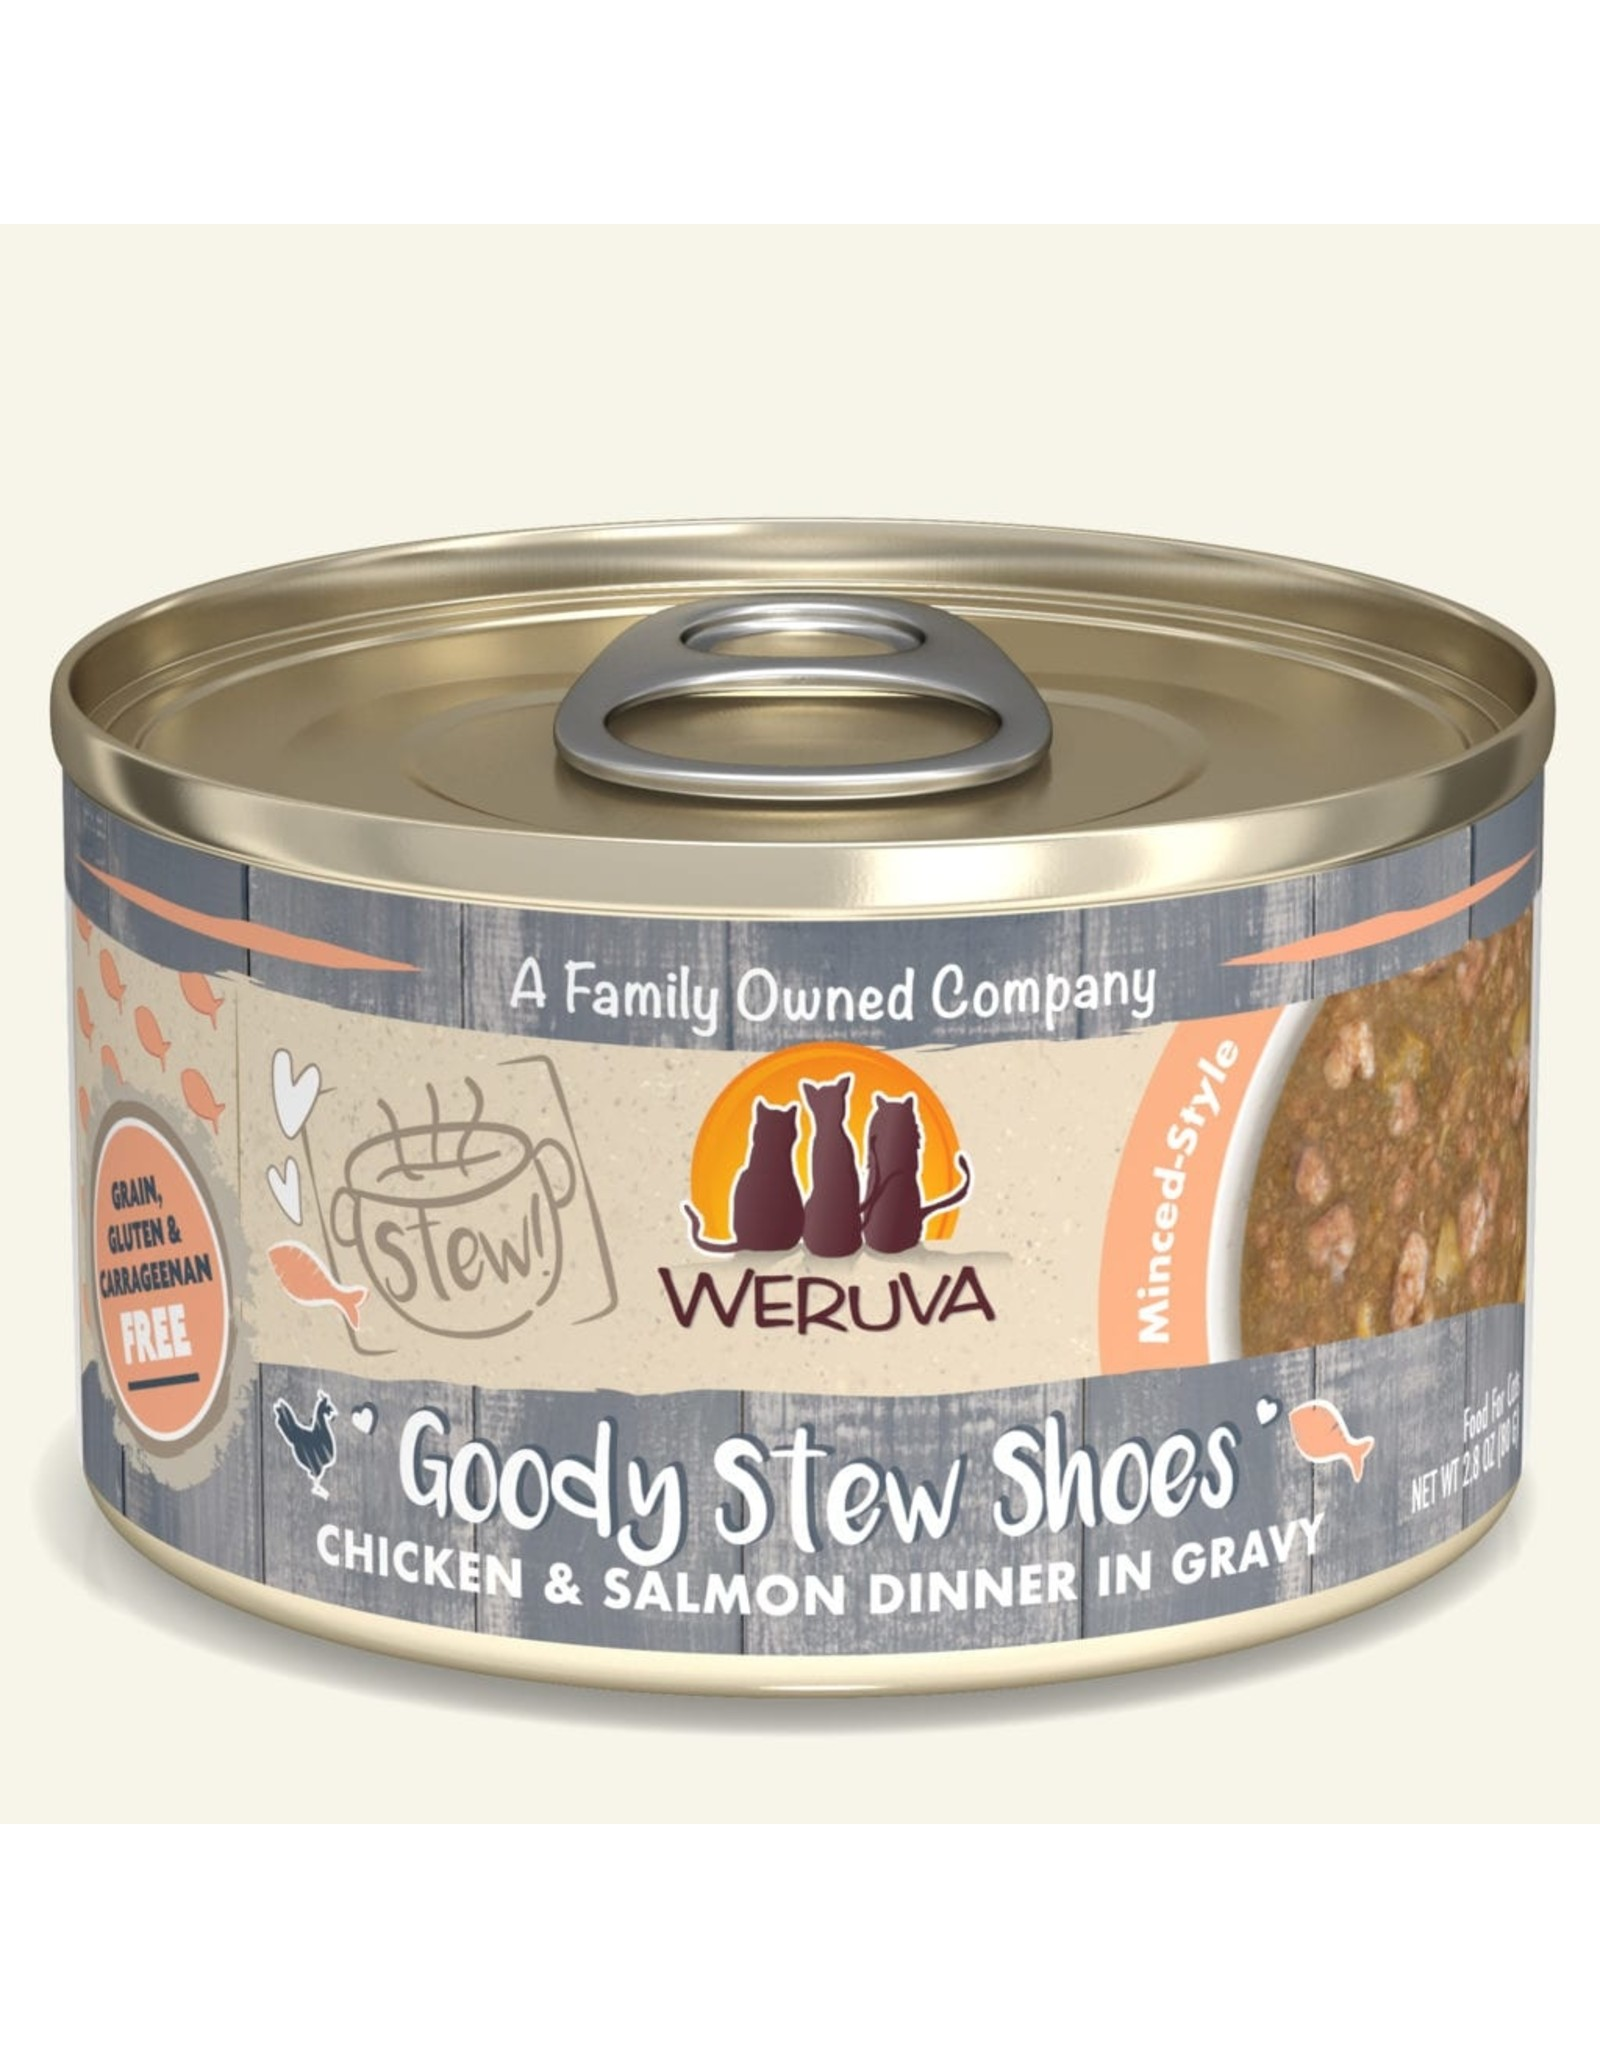 Weruva Weruva Wet Cat Food Goody Stew Shoes Chicken & Salmon Dinner in Gravy 2.8oz Can Grain Free